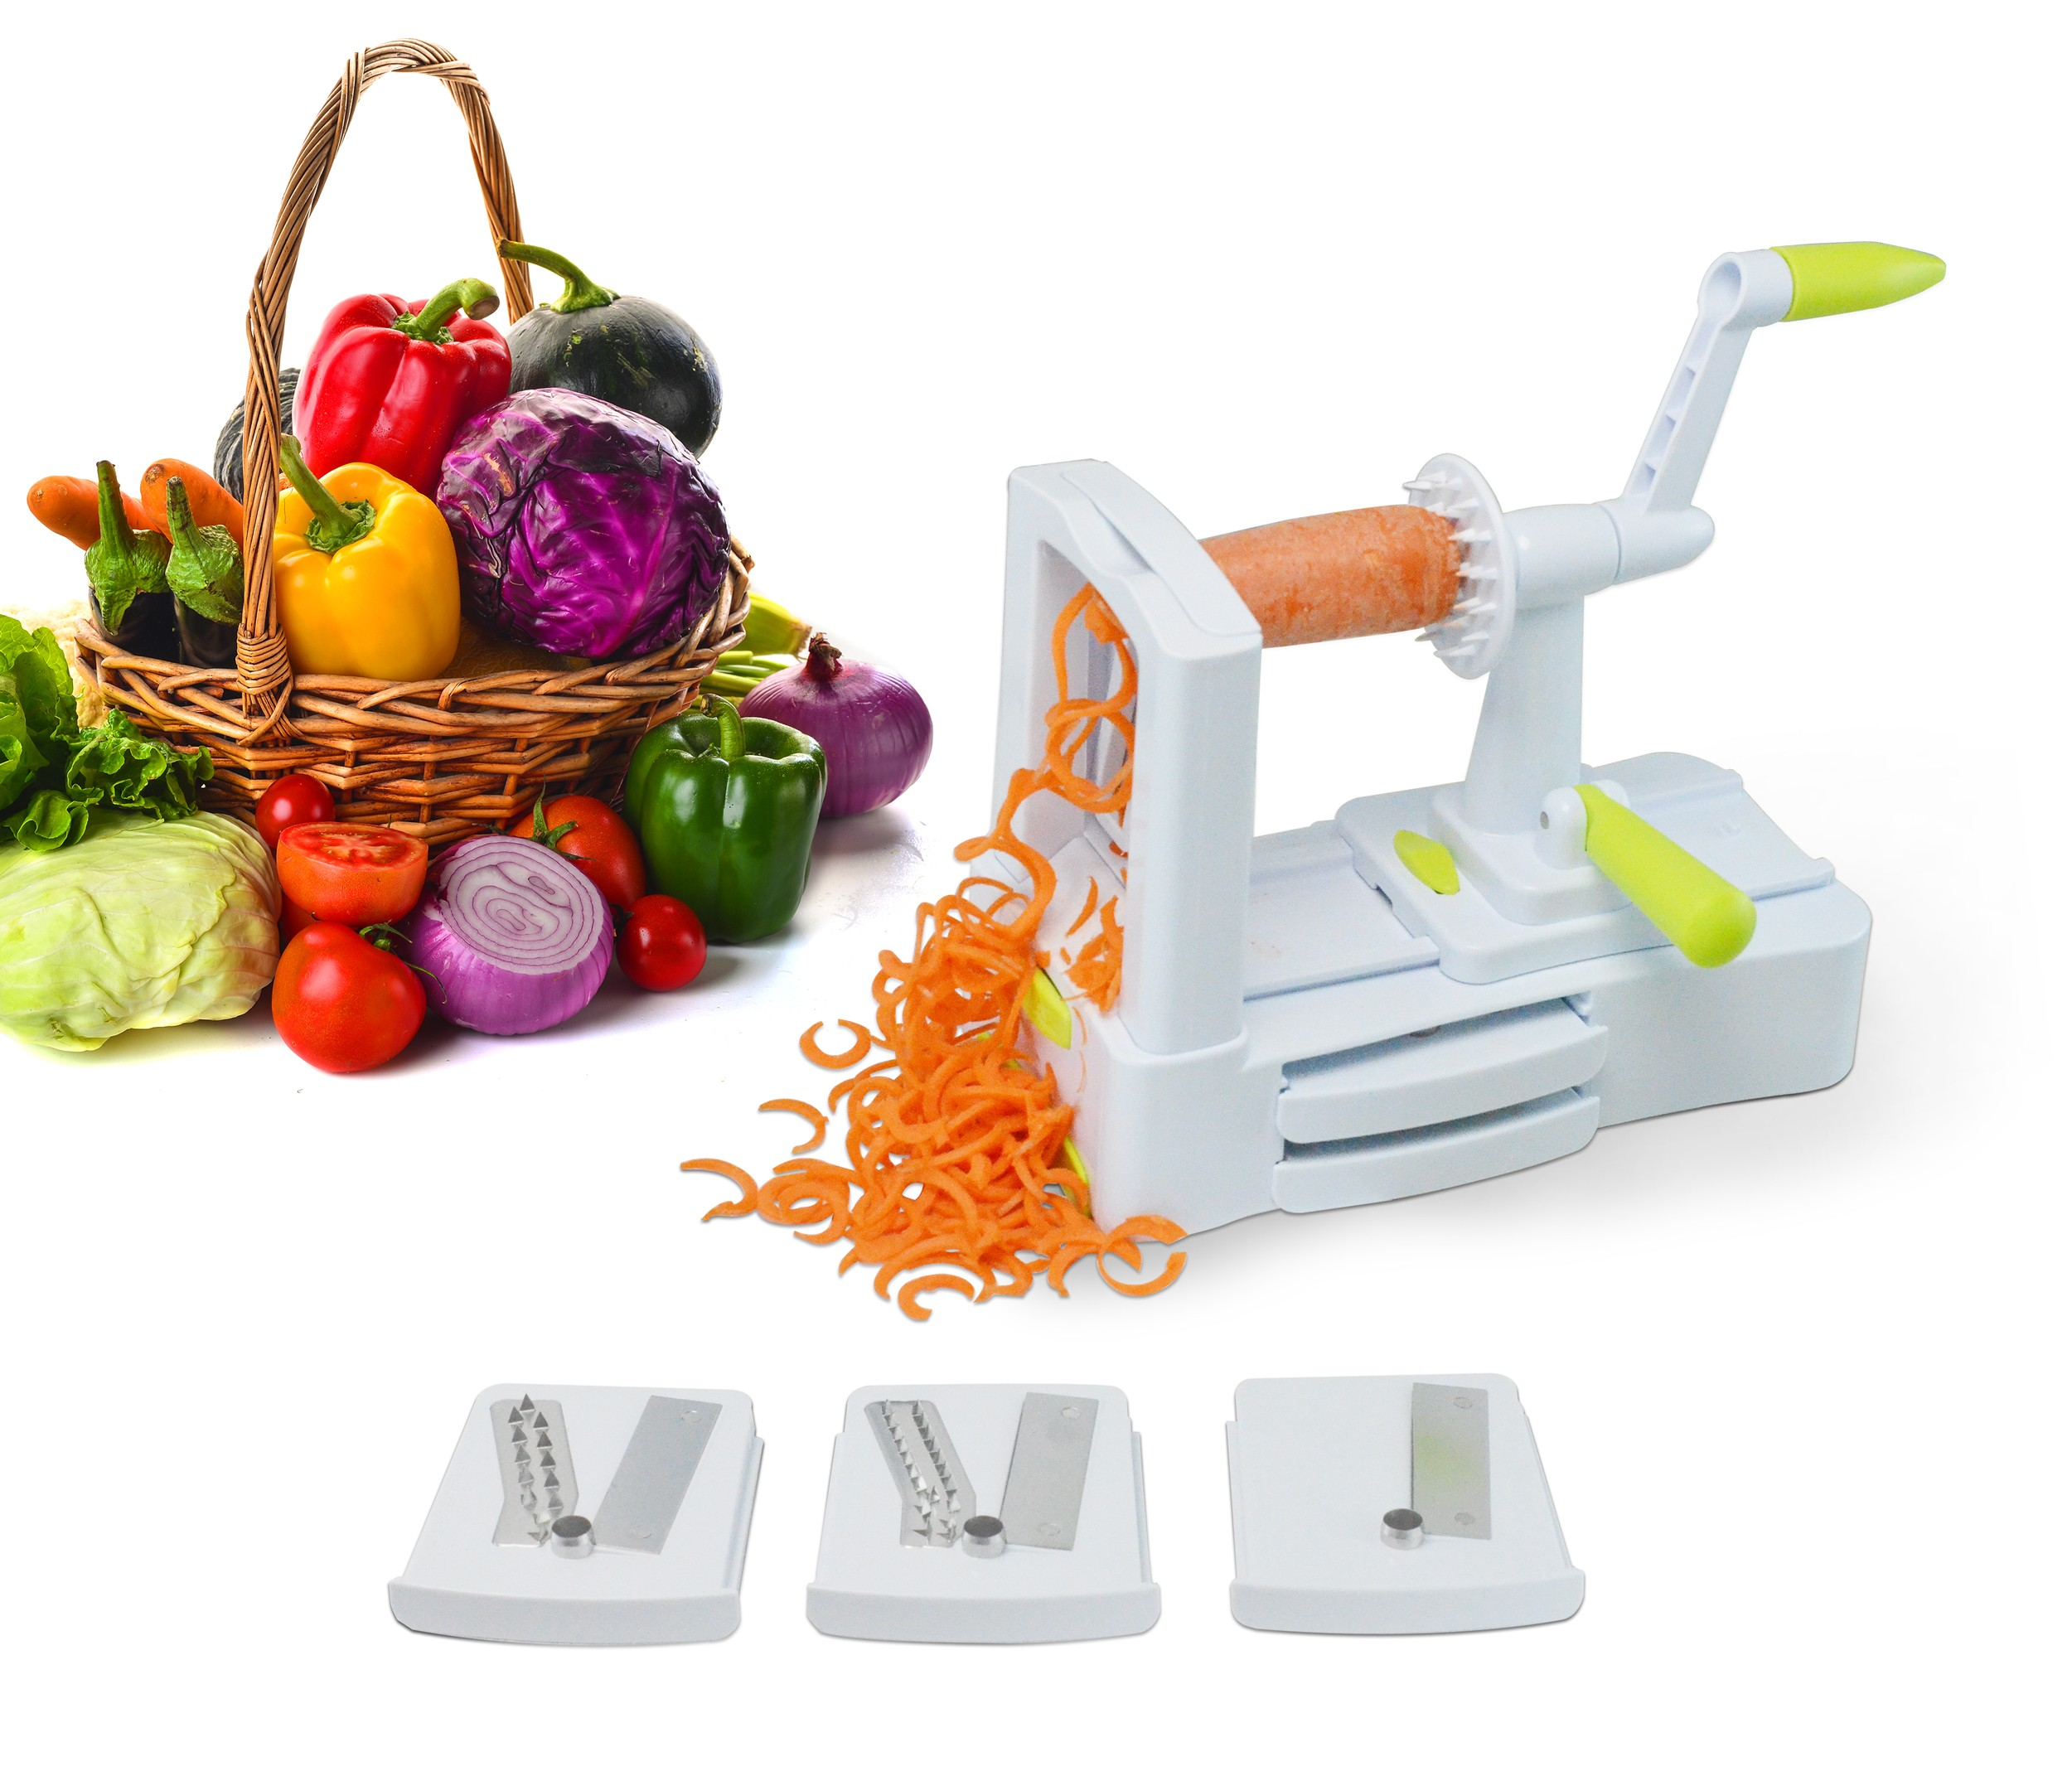 3 Blade Spiral Vegetable Slicer